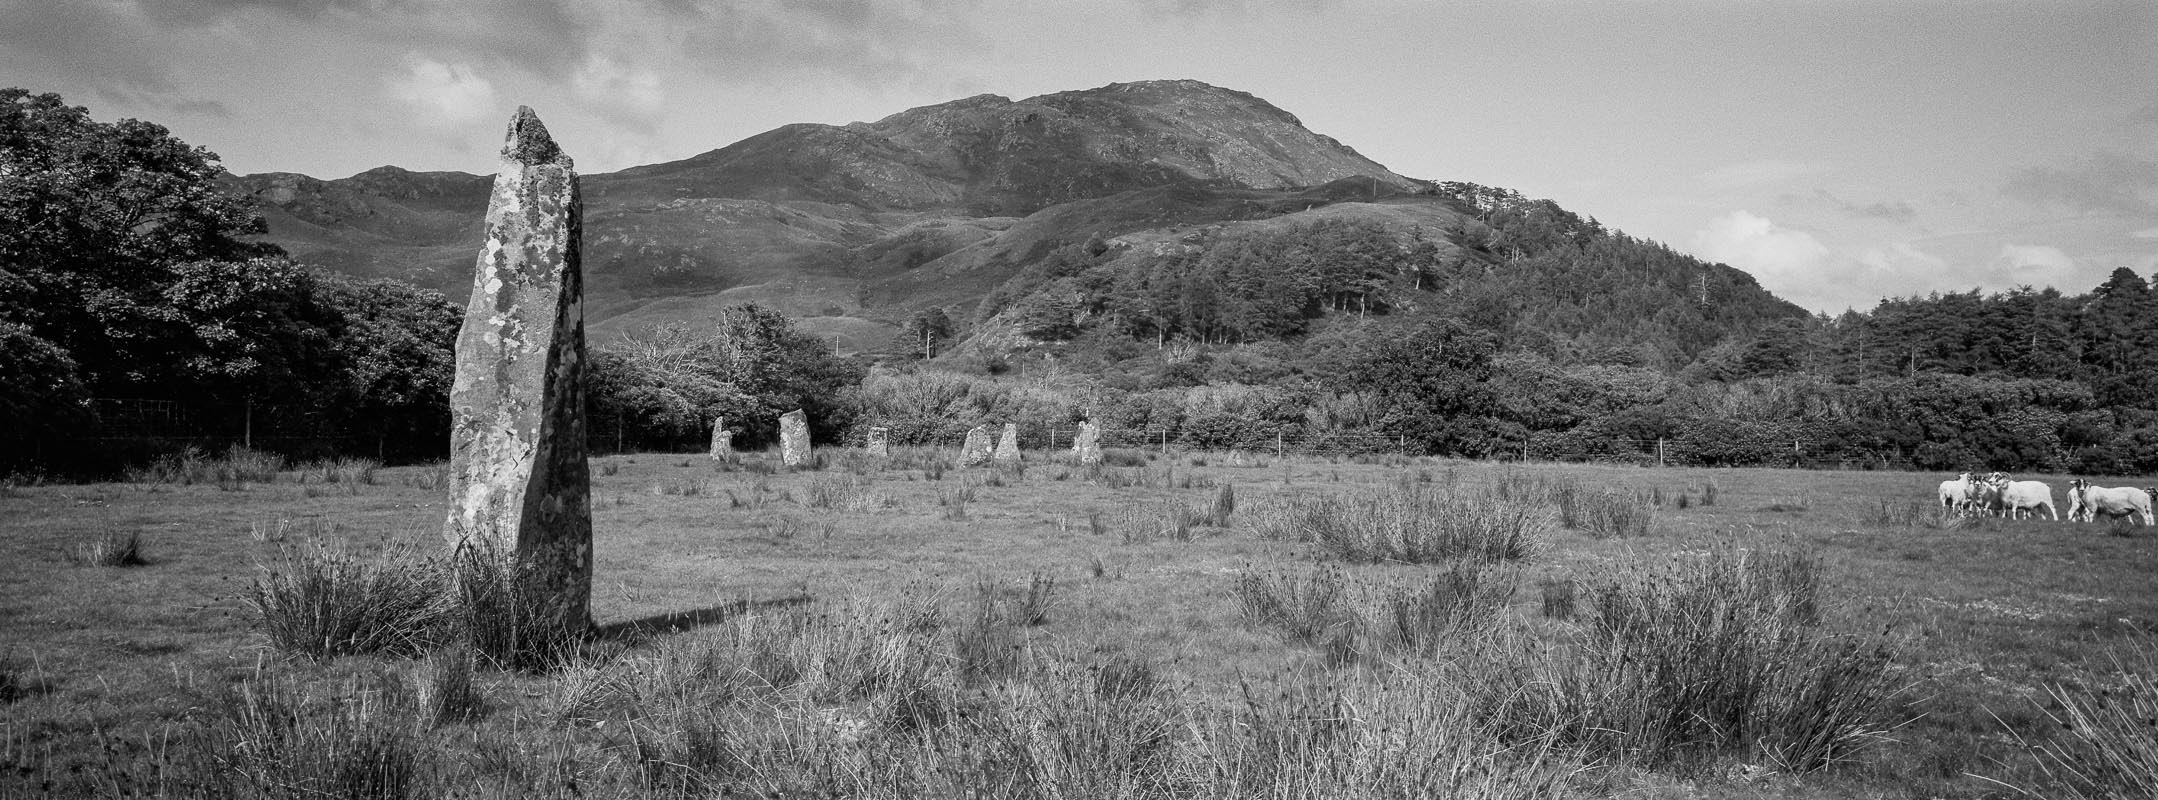 Loch Buie Stone Circle and Outlier